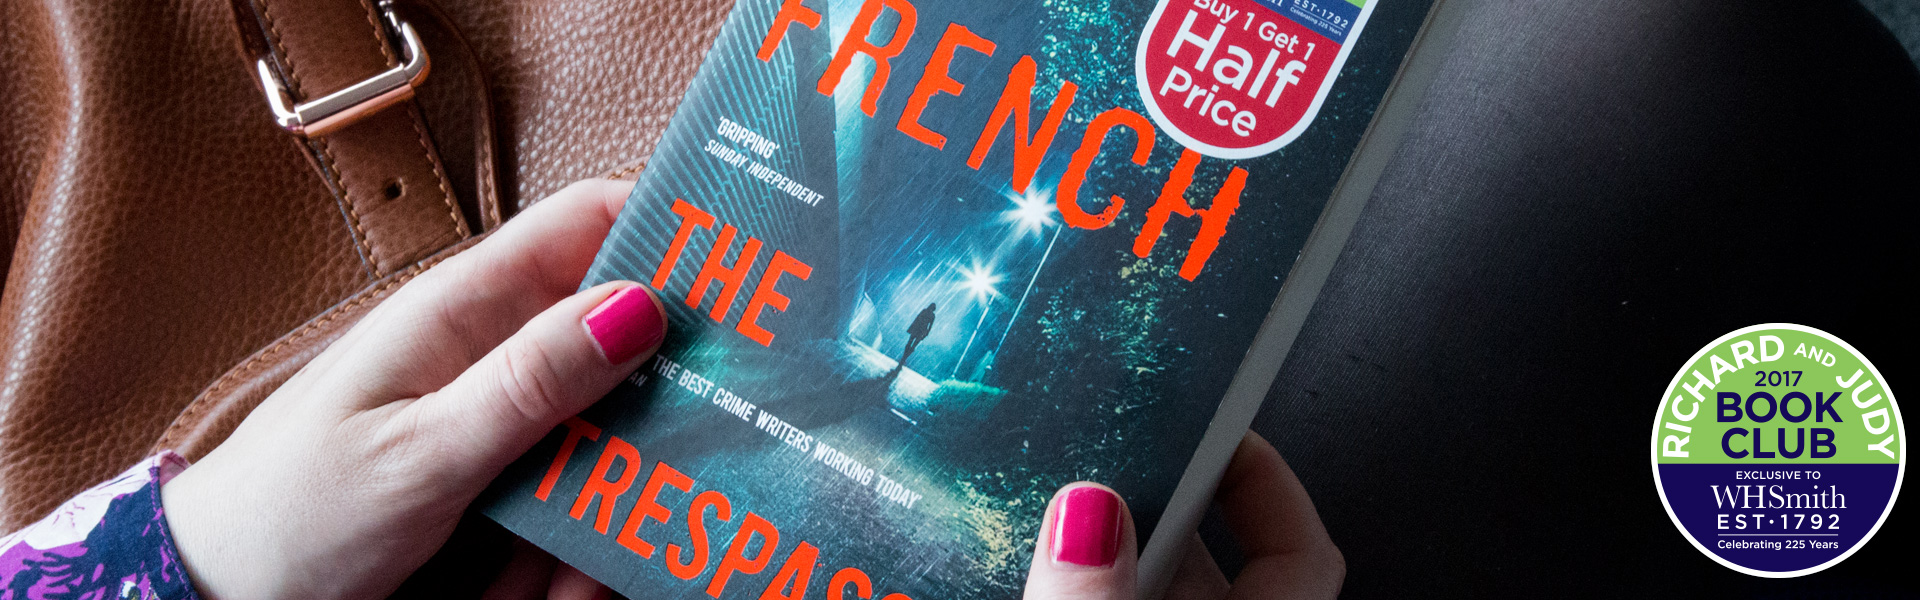 Richard and Judy Introduce The Trespasser by Tana French